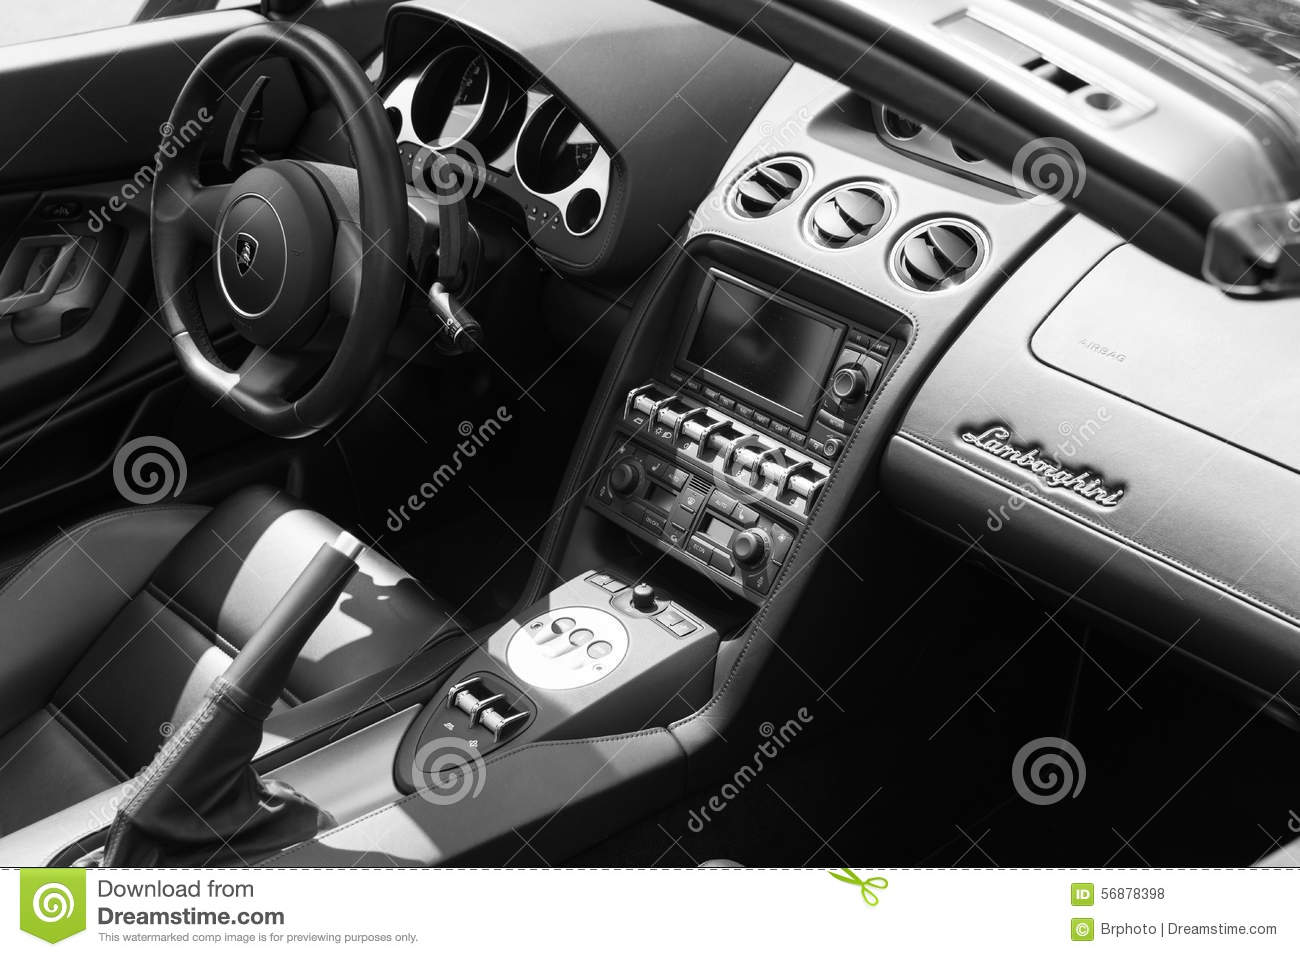 lamborghini interior car on display editorial stock photo image 56878398. Black Bedroom Furniture Sets. Home Design Ideas